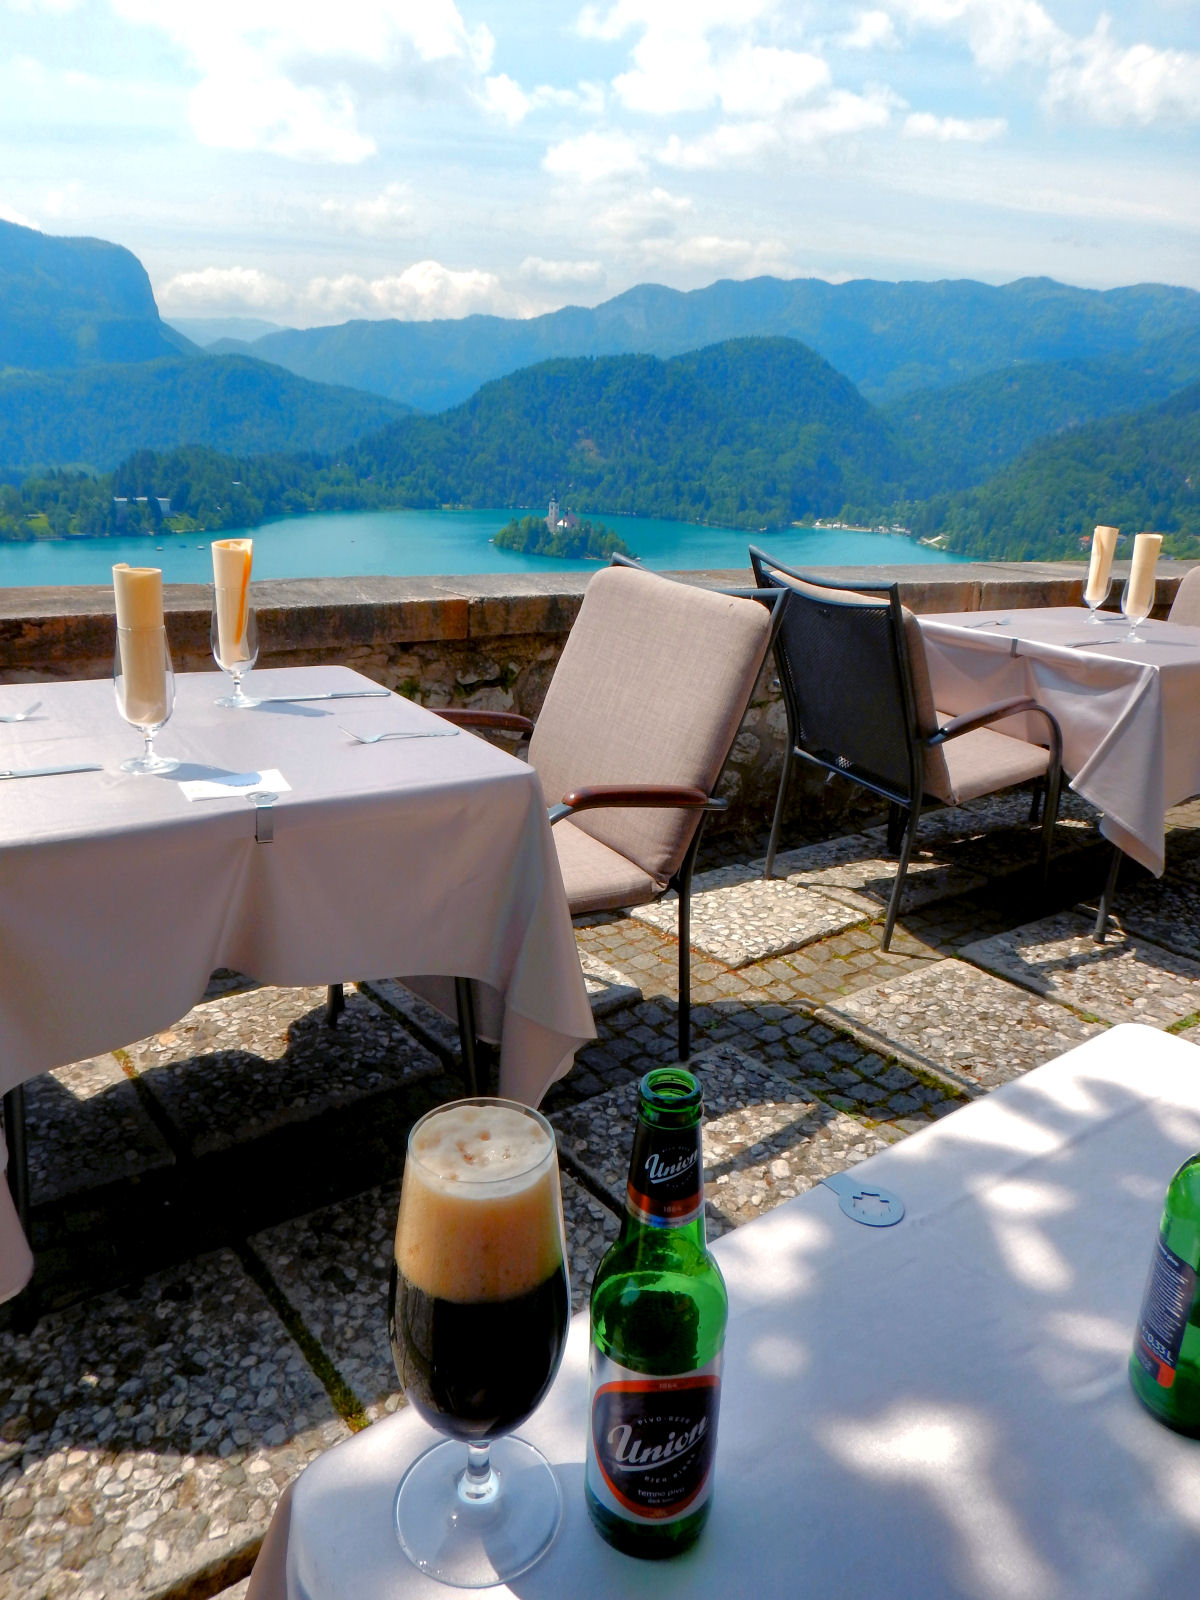 Castle Restaurant offers stunning views over the lake and Slovenian Alps